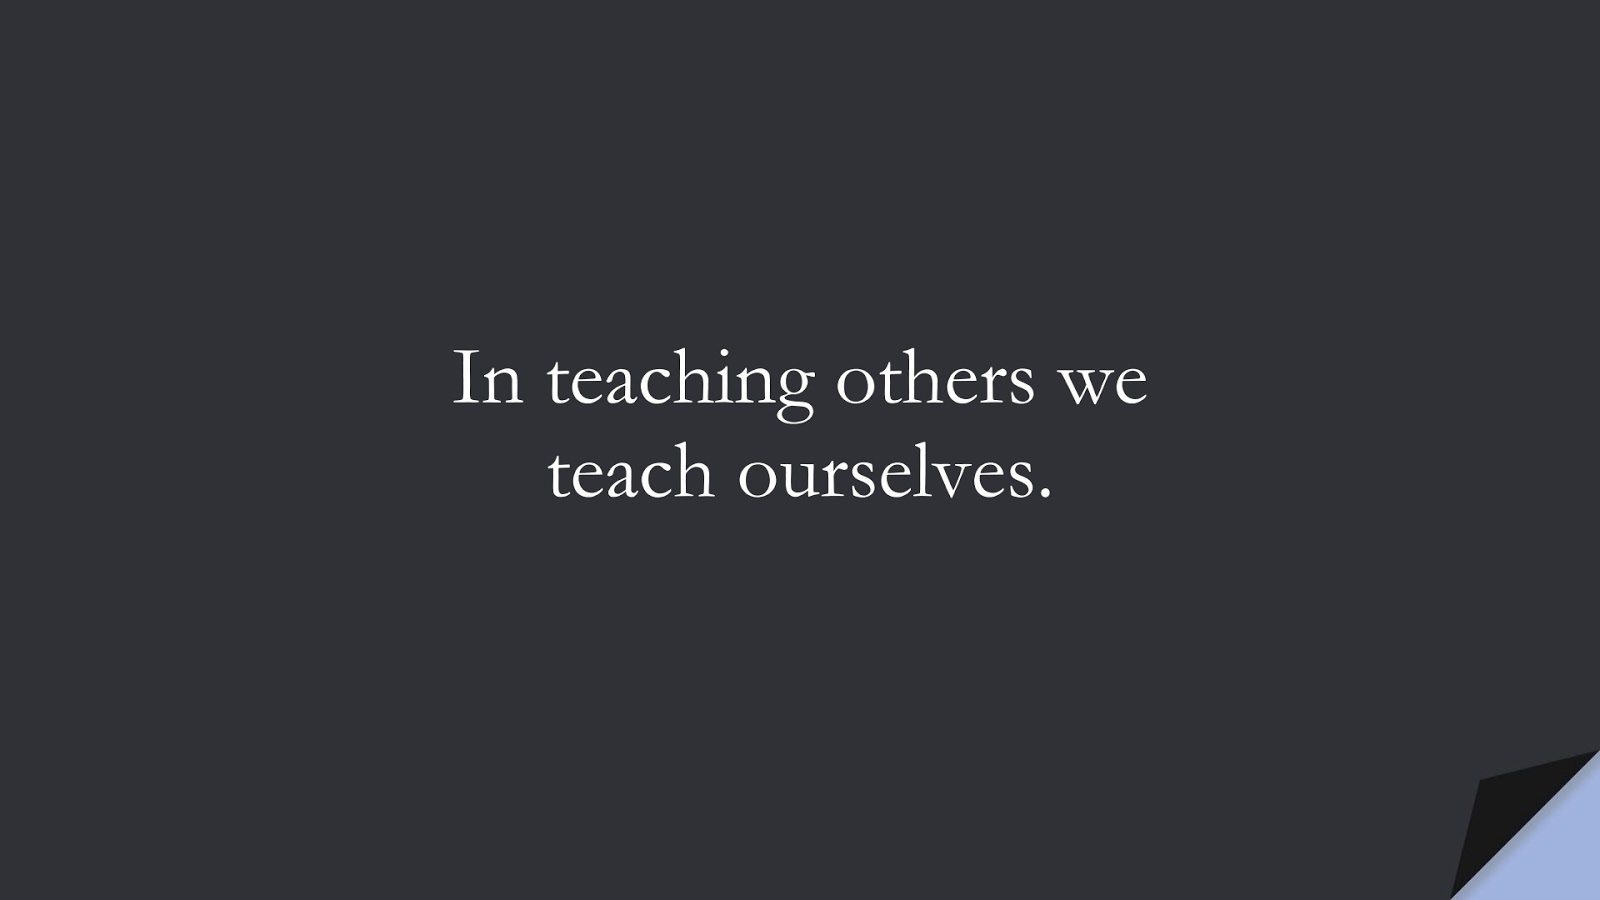 In teaching others we teach ourselves.FALSE